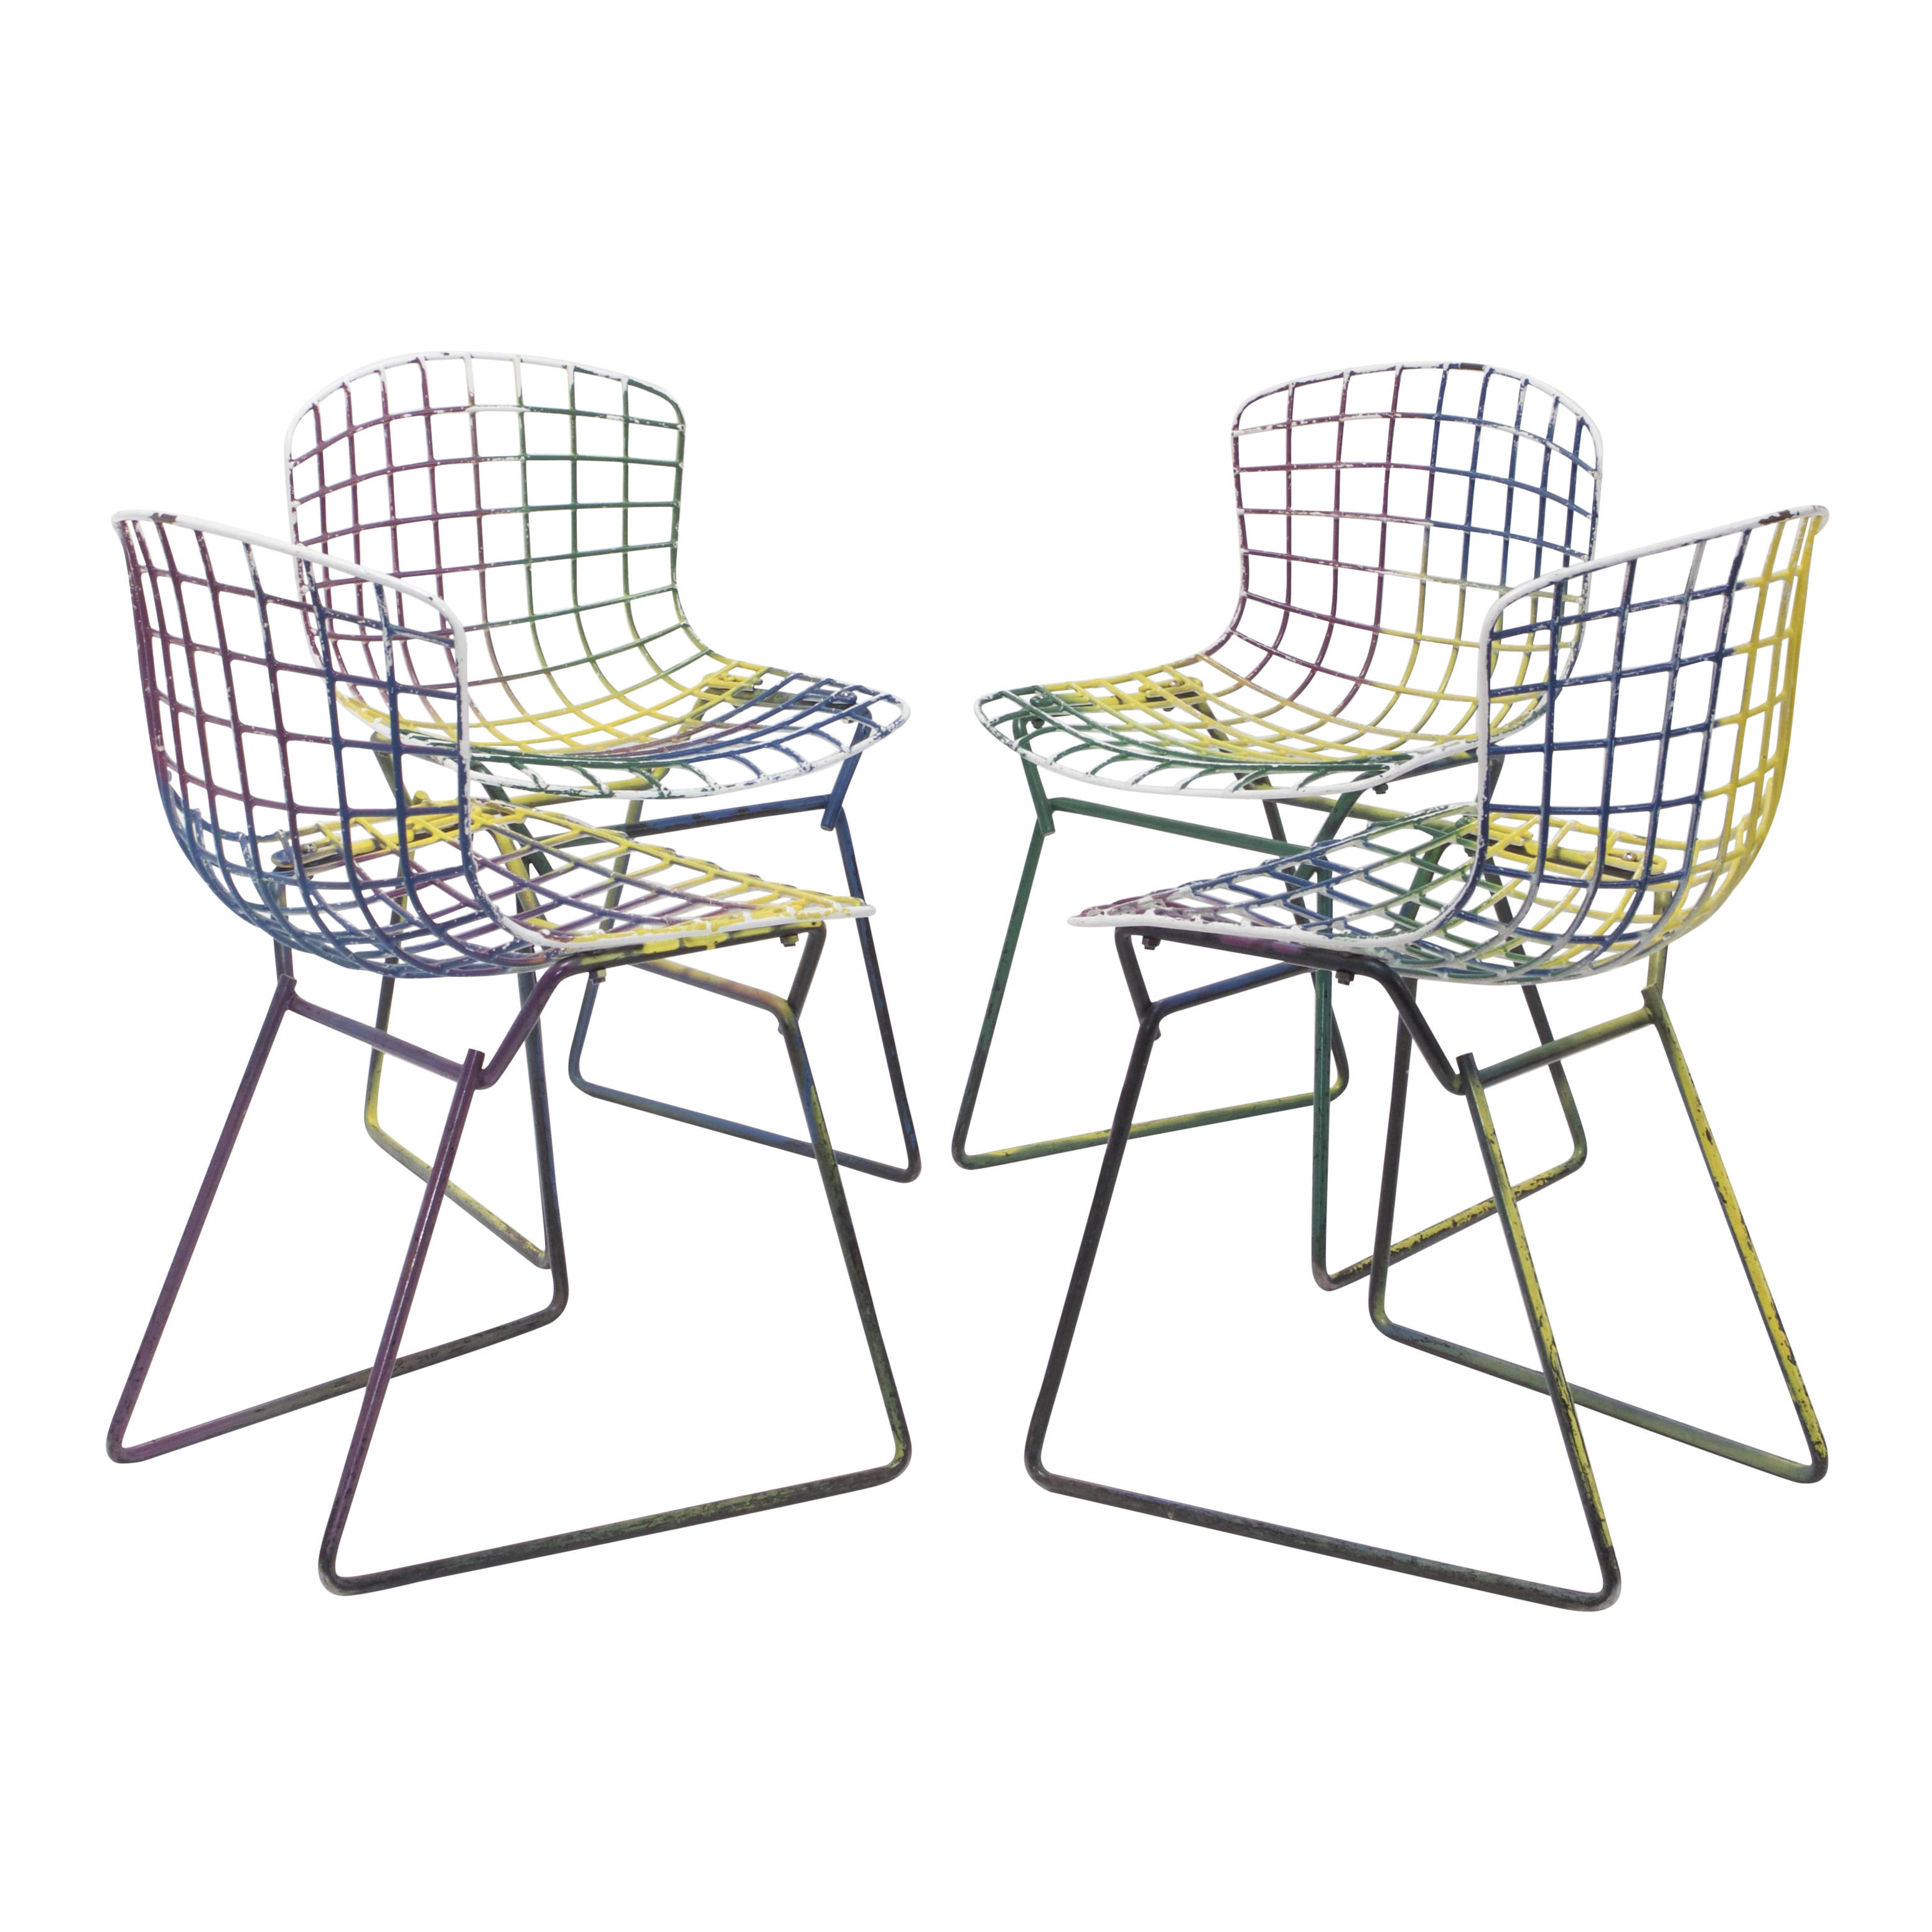 Knoll Bertoia Child Size Chairs Multi   Set Of 4   Image 1 Of 11